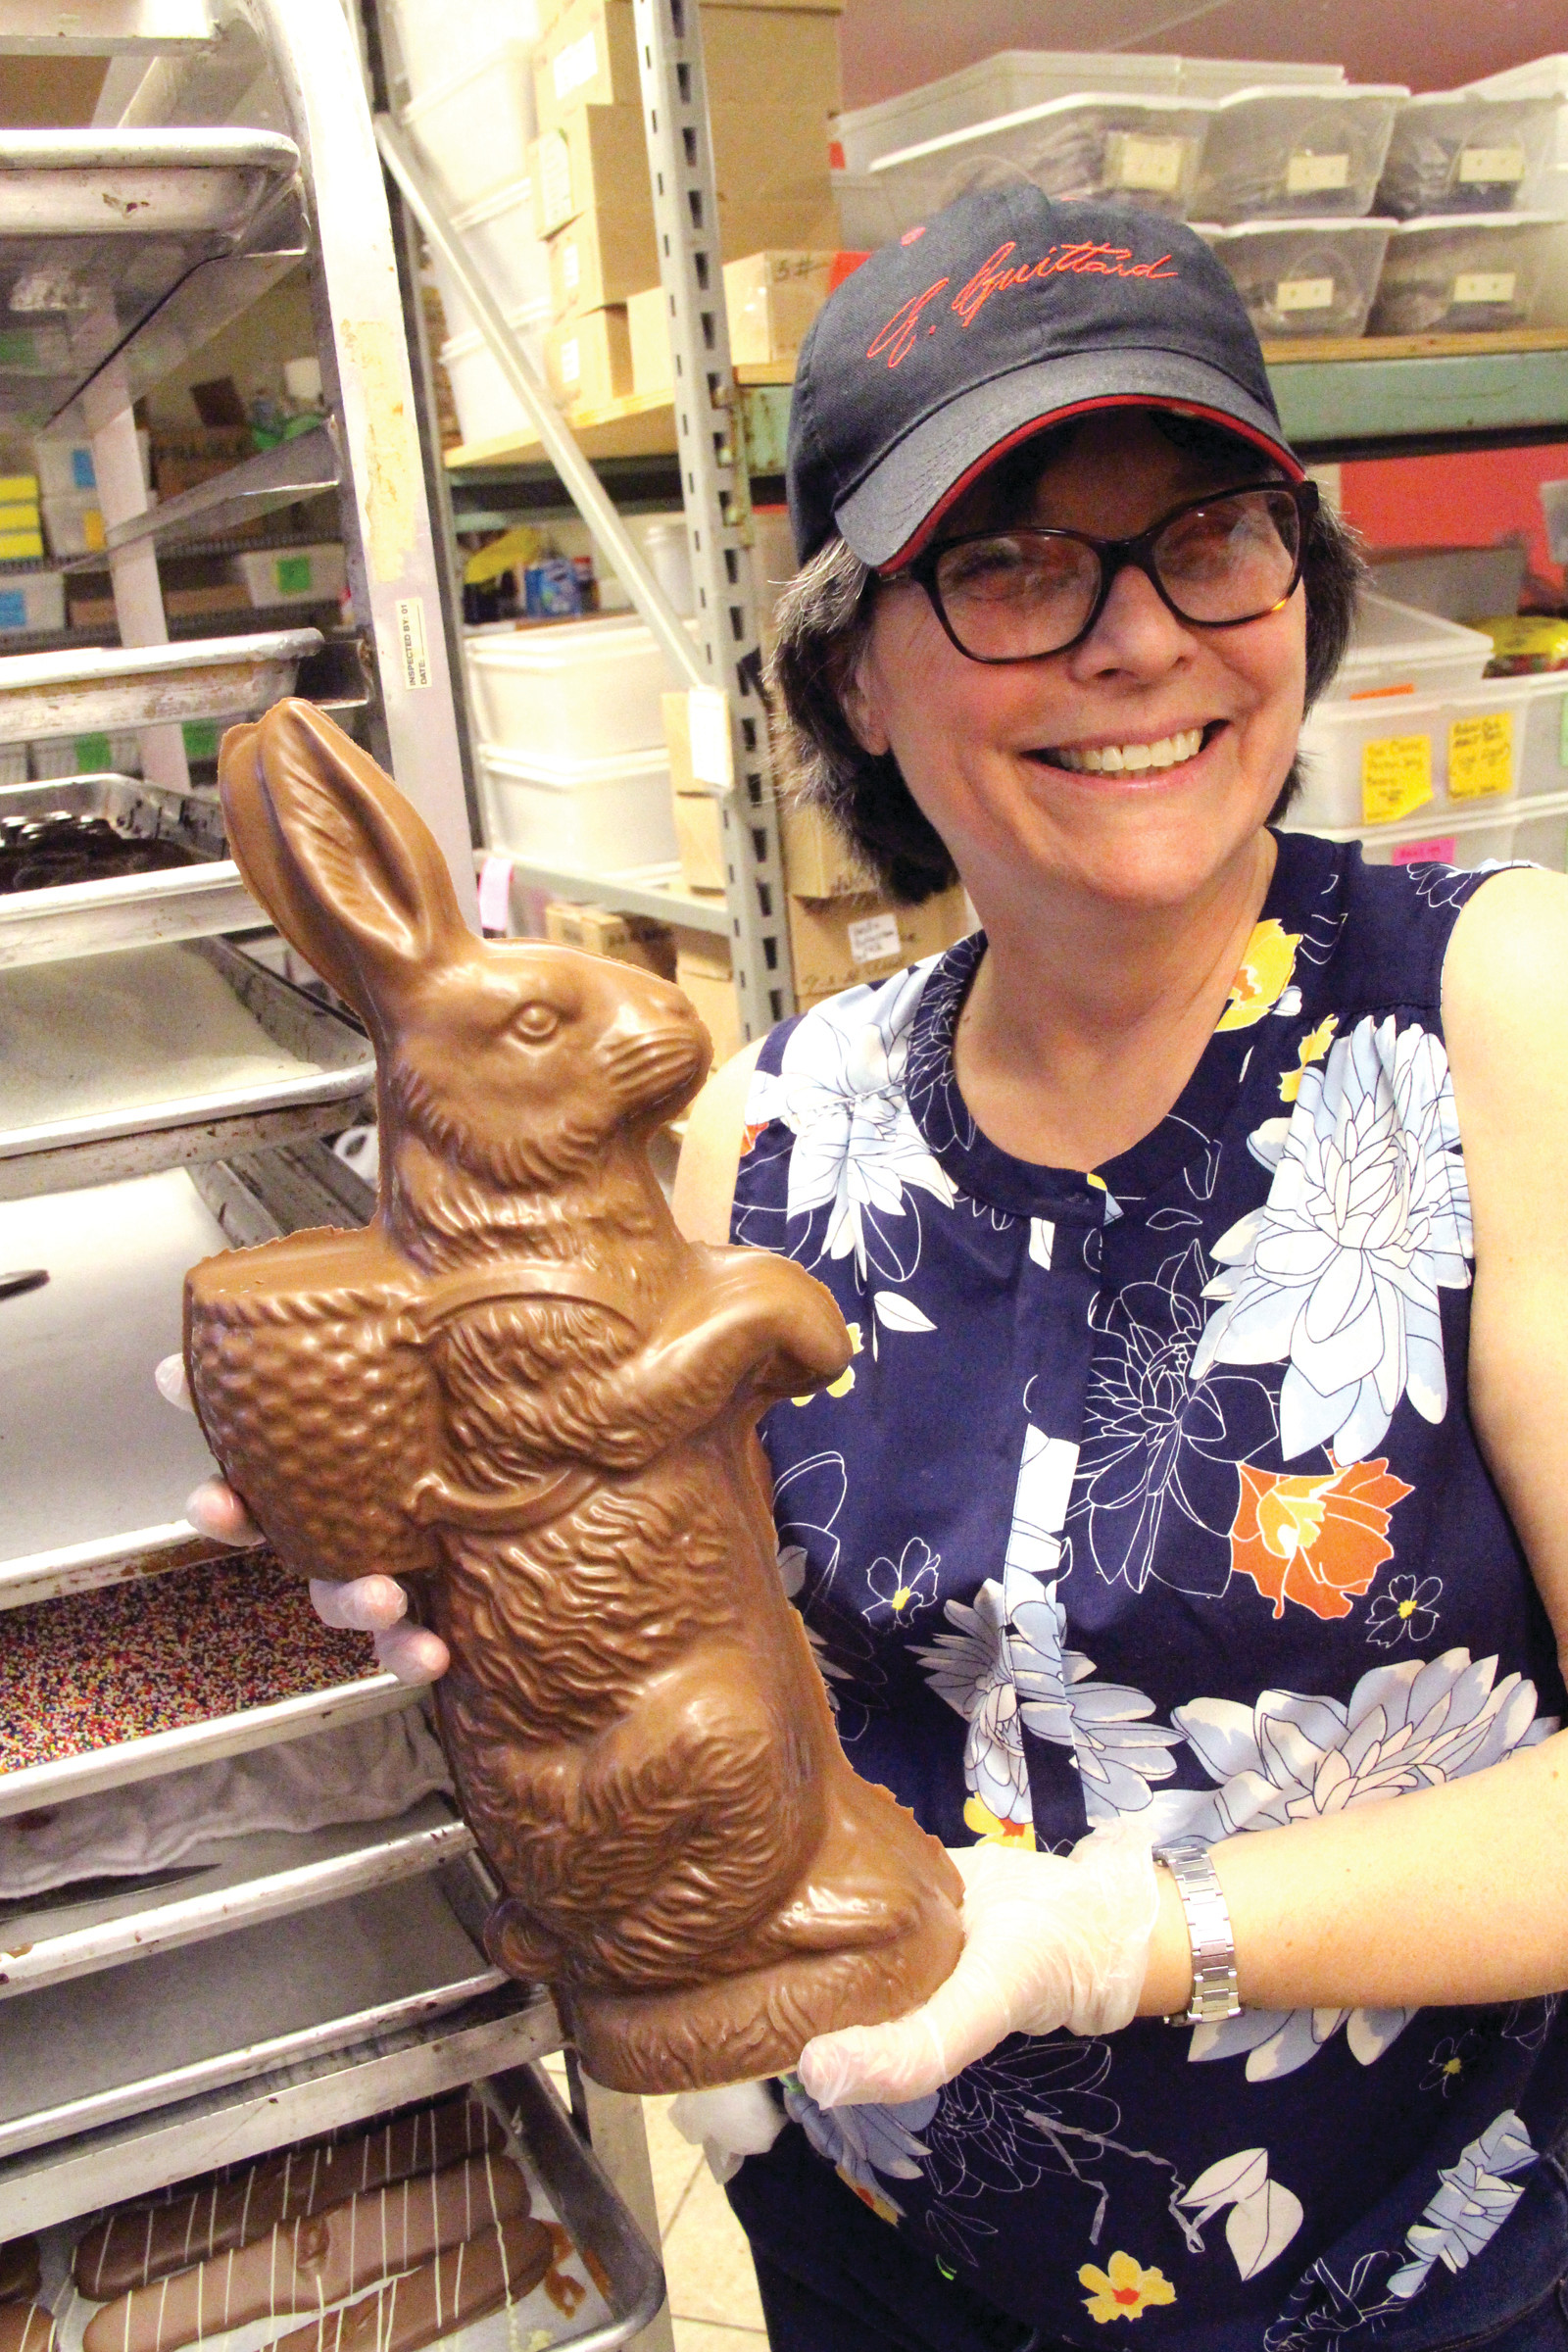 SUPER SIZED: Marie Schaller holds up the largest bunny they make. It's 17 inches high and tilts the scale at 2.5 to 3 pounds.